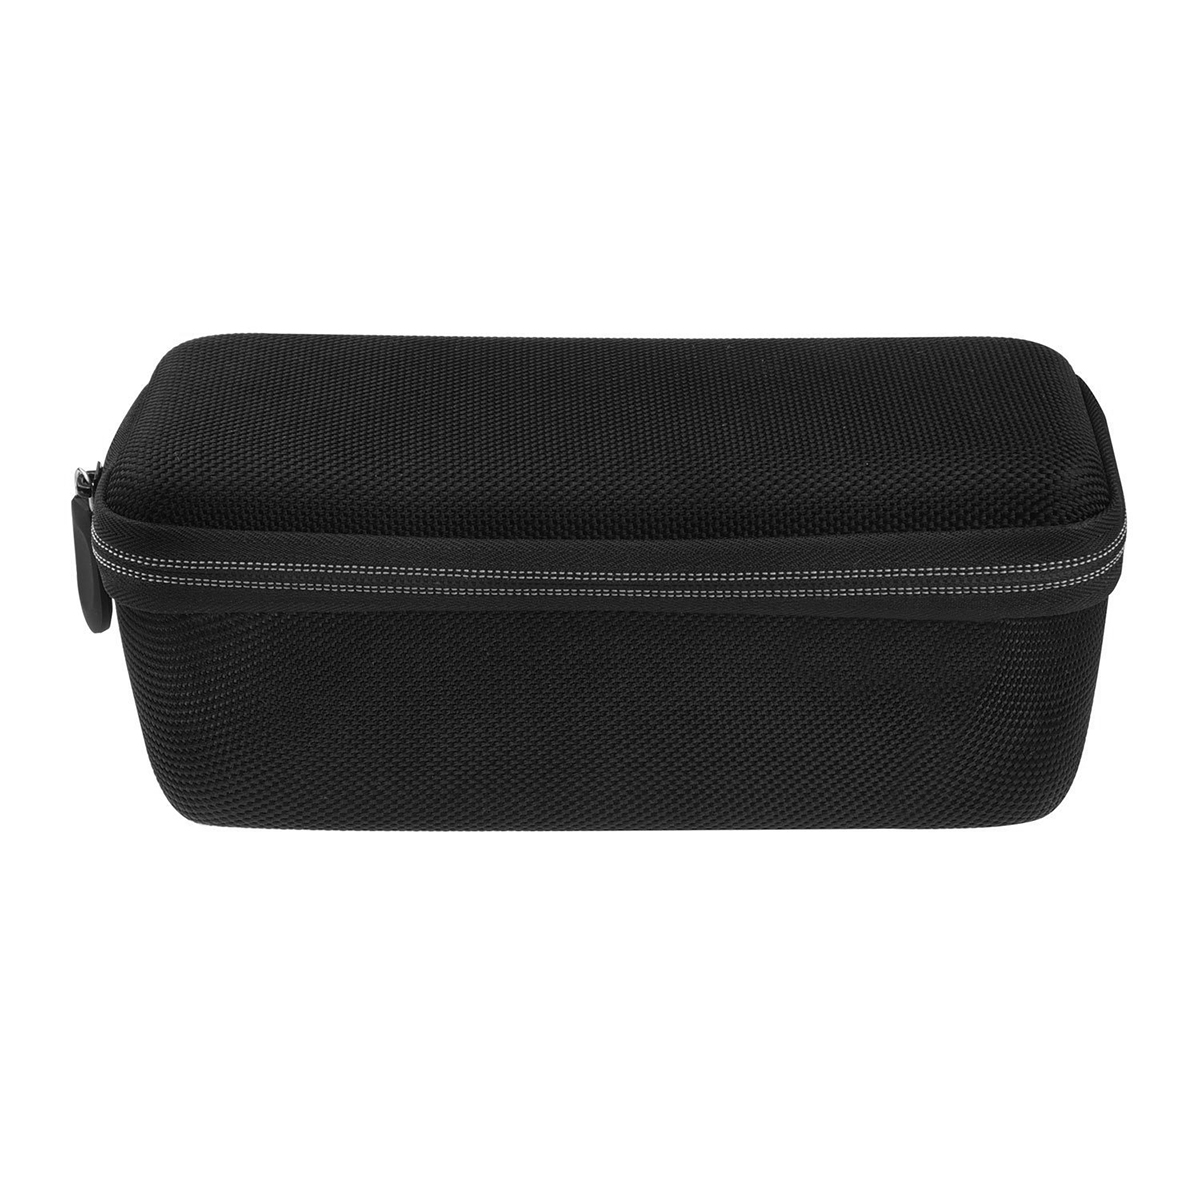 lowest price 2020 New Portable case set Travel EVA Silicone Storage Case Bag and Soft Cover For Bose-Soundlink Mini I II 2 BT Speaker SOONHUA